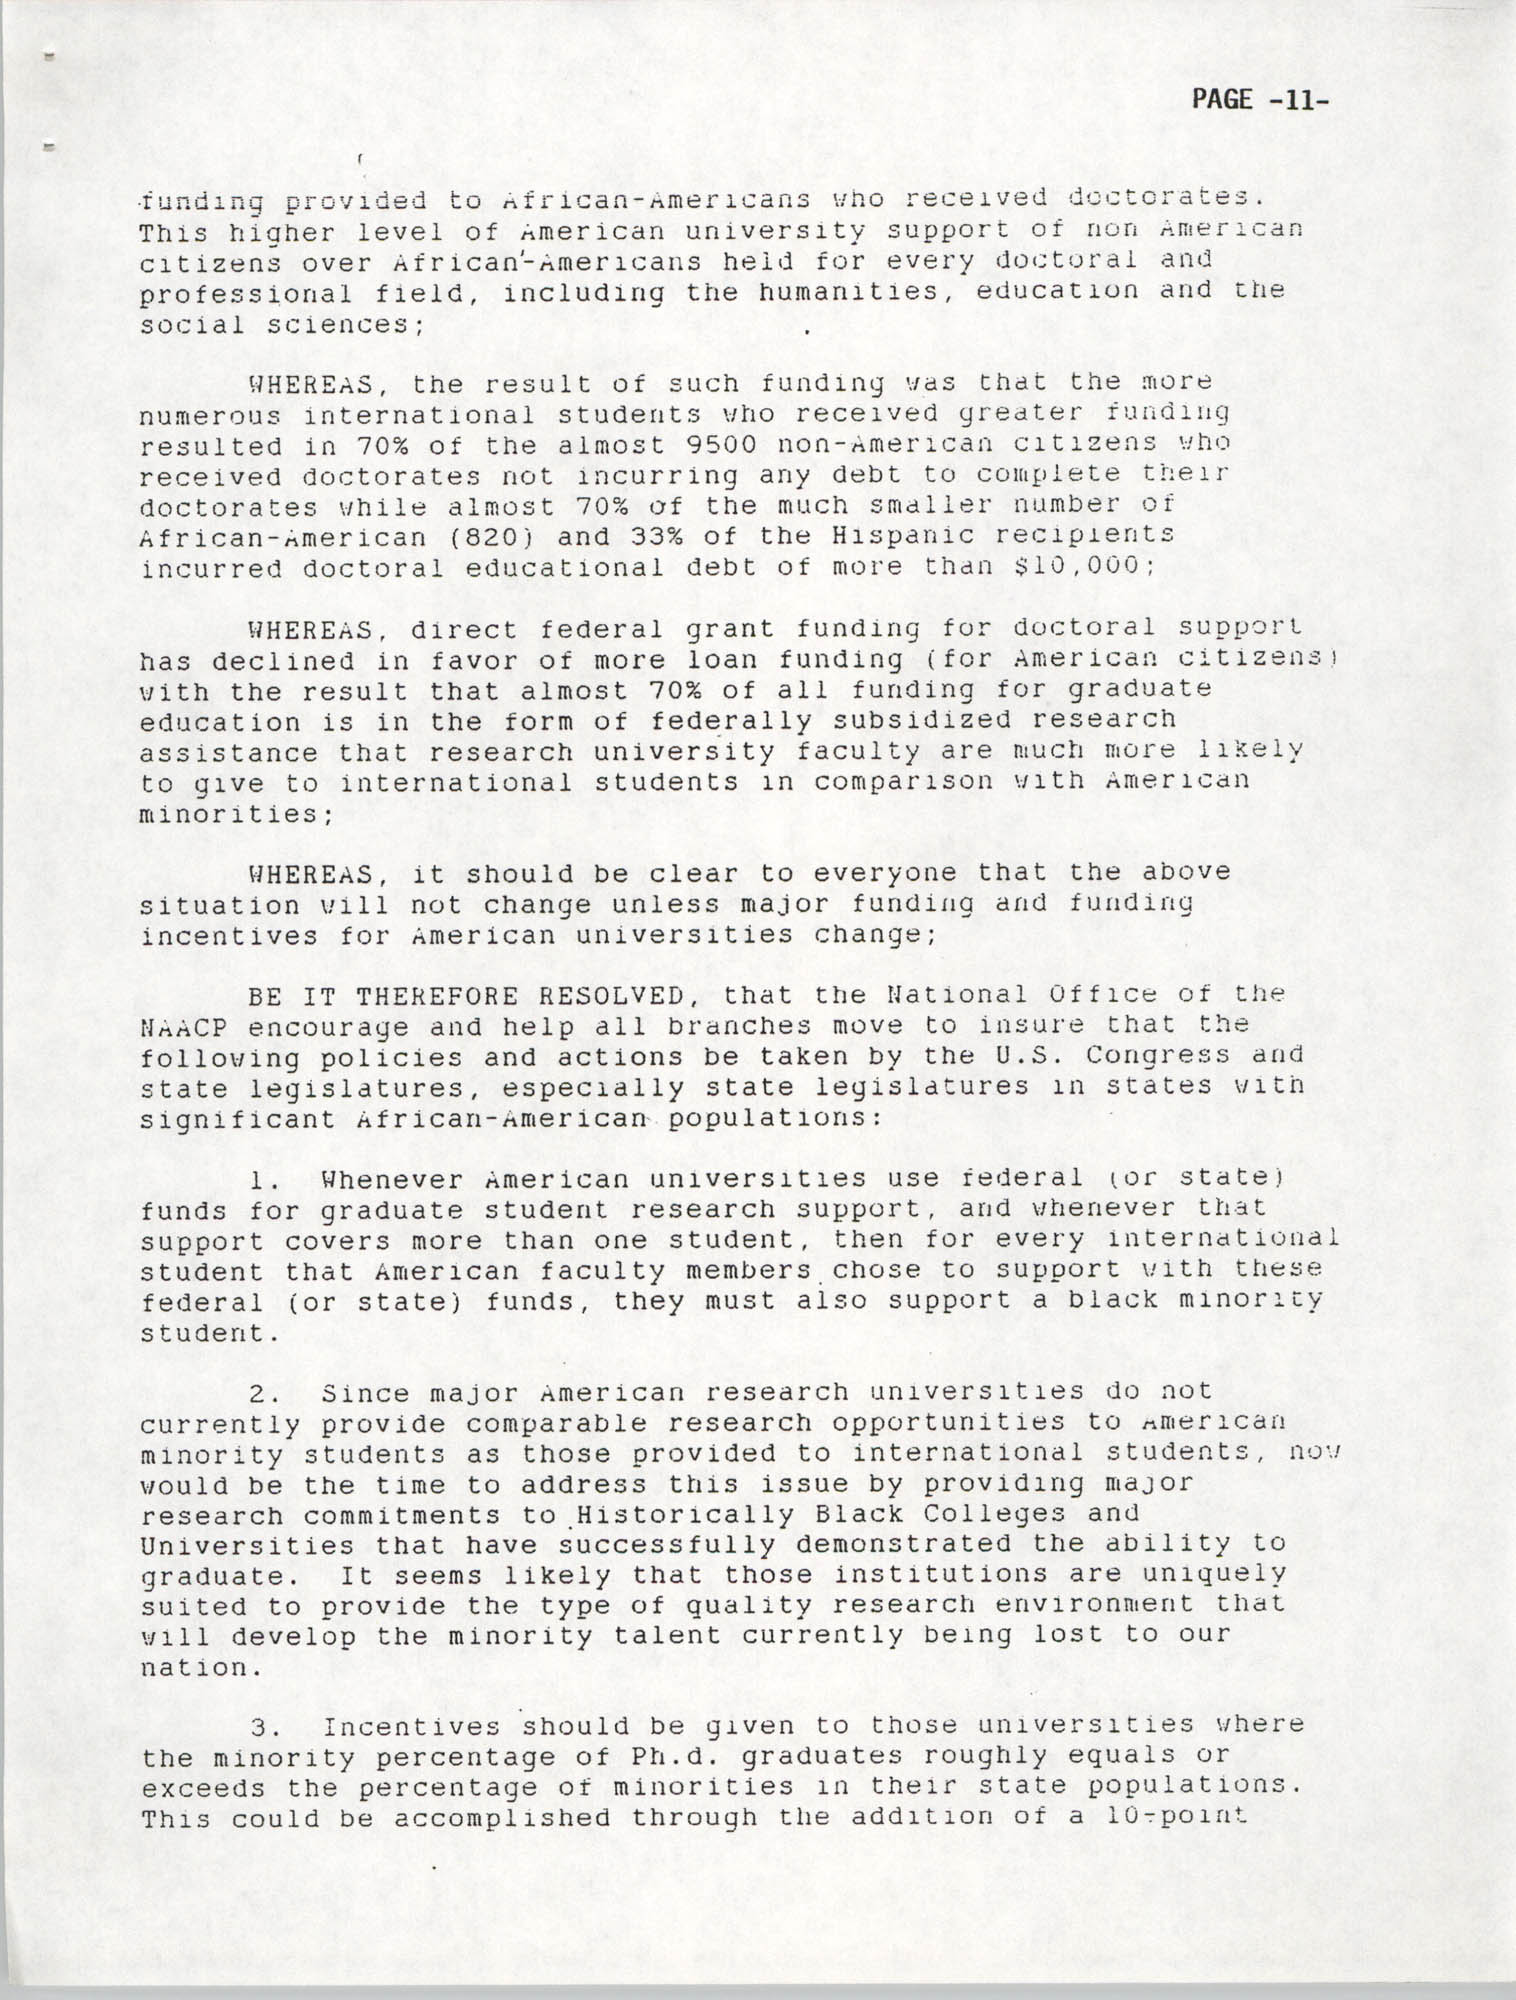 Resolutions Submitted Under Article X, Section 2 of the Constitution of the NAACP, 1992, Page 11